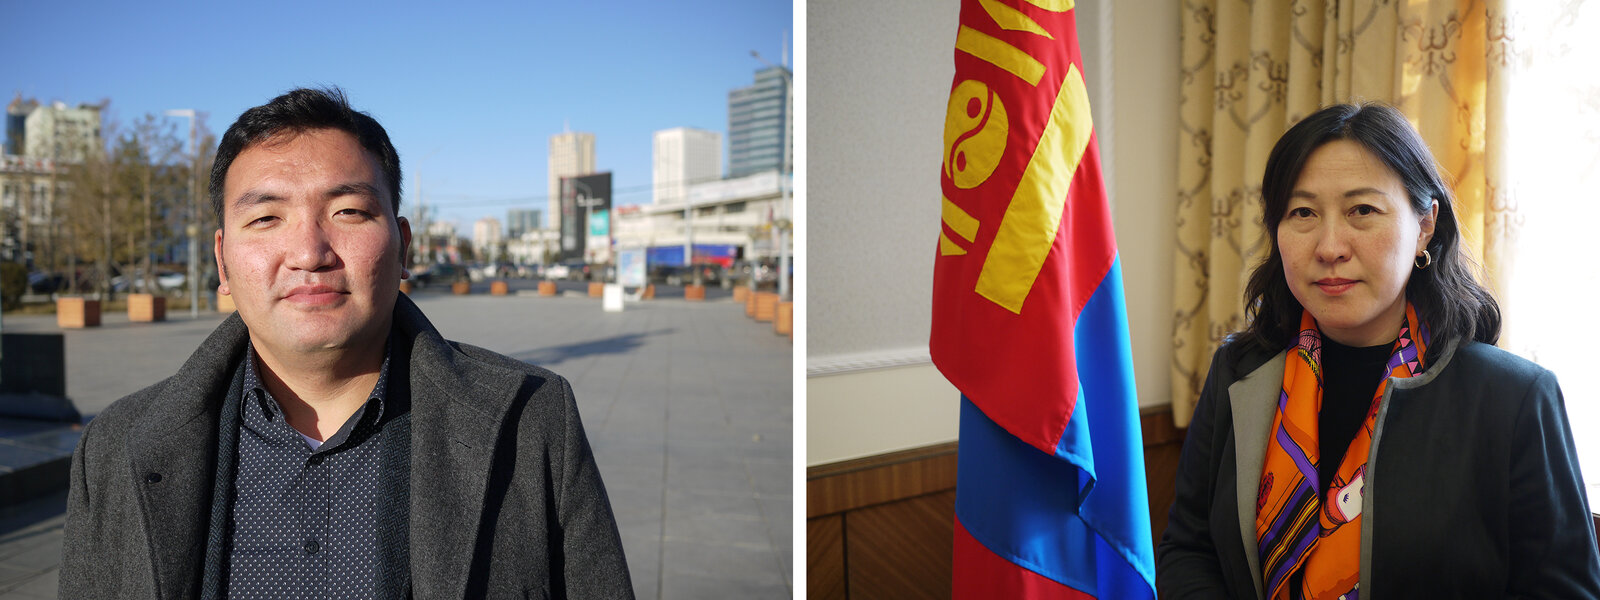 (Left) Mogi Bontoi runs the market intelligence firm Cover Mongolia. He says the country is likely to default on billions of dollars' worth of loans. (Right) Undraa Agvaanluvsan, elected to Mongolia's parliament in June, vows to help Mongolia climb out of its massive debt problem. Rob Schmitz/NPR